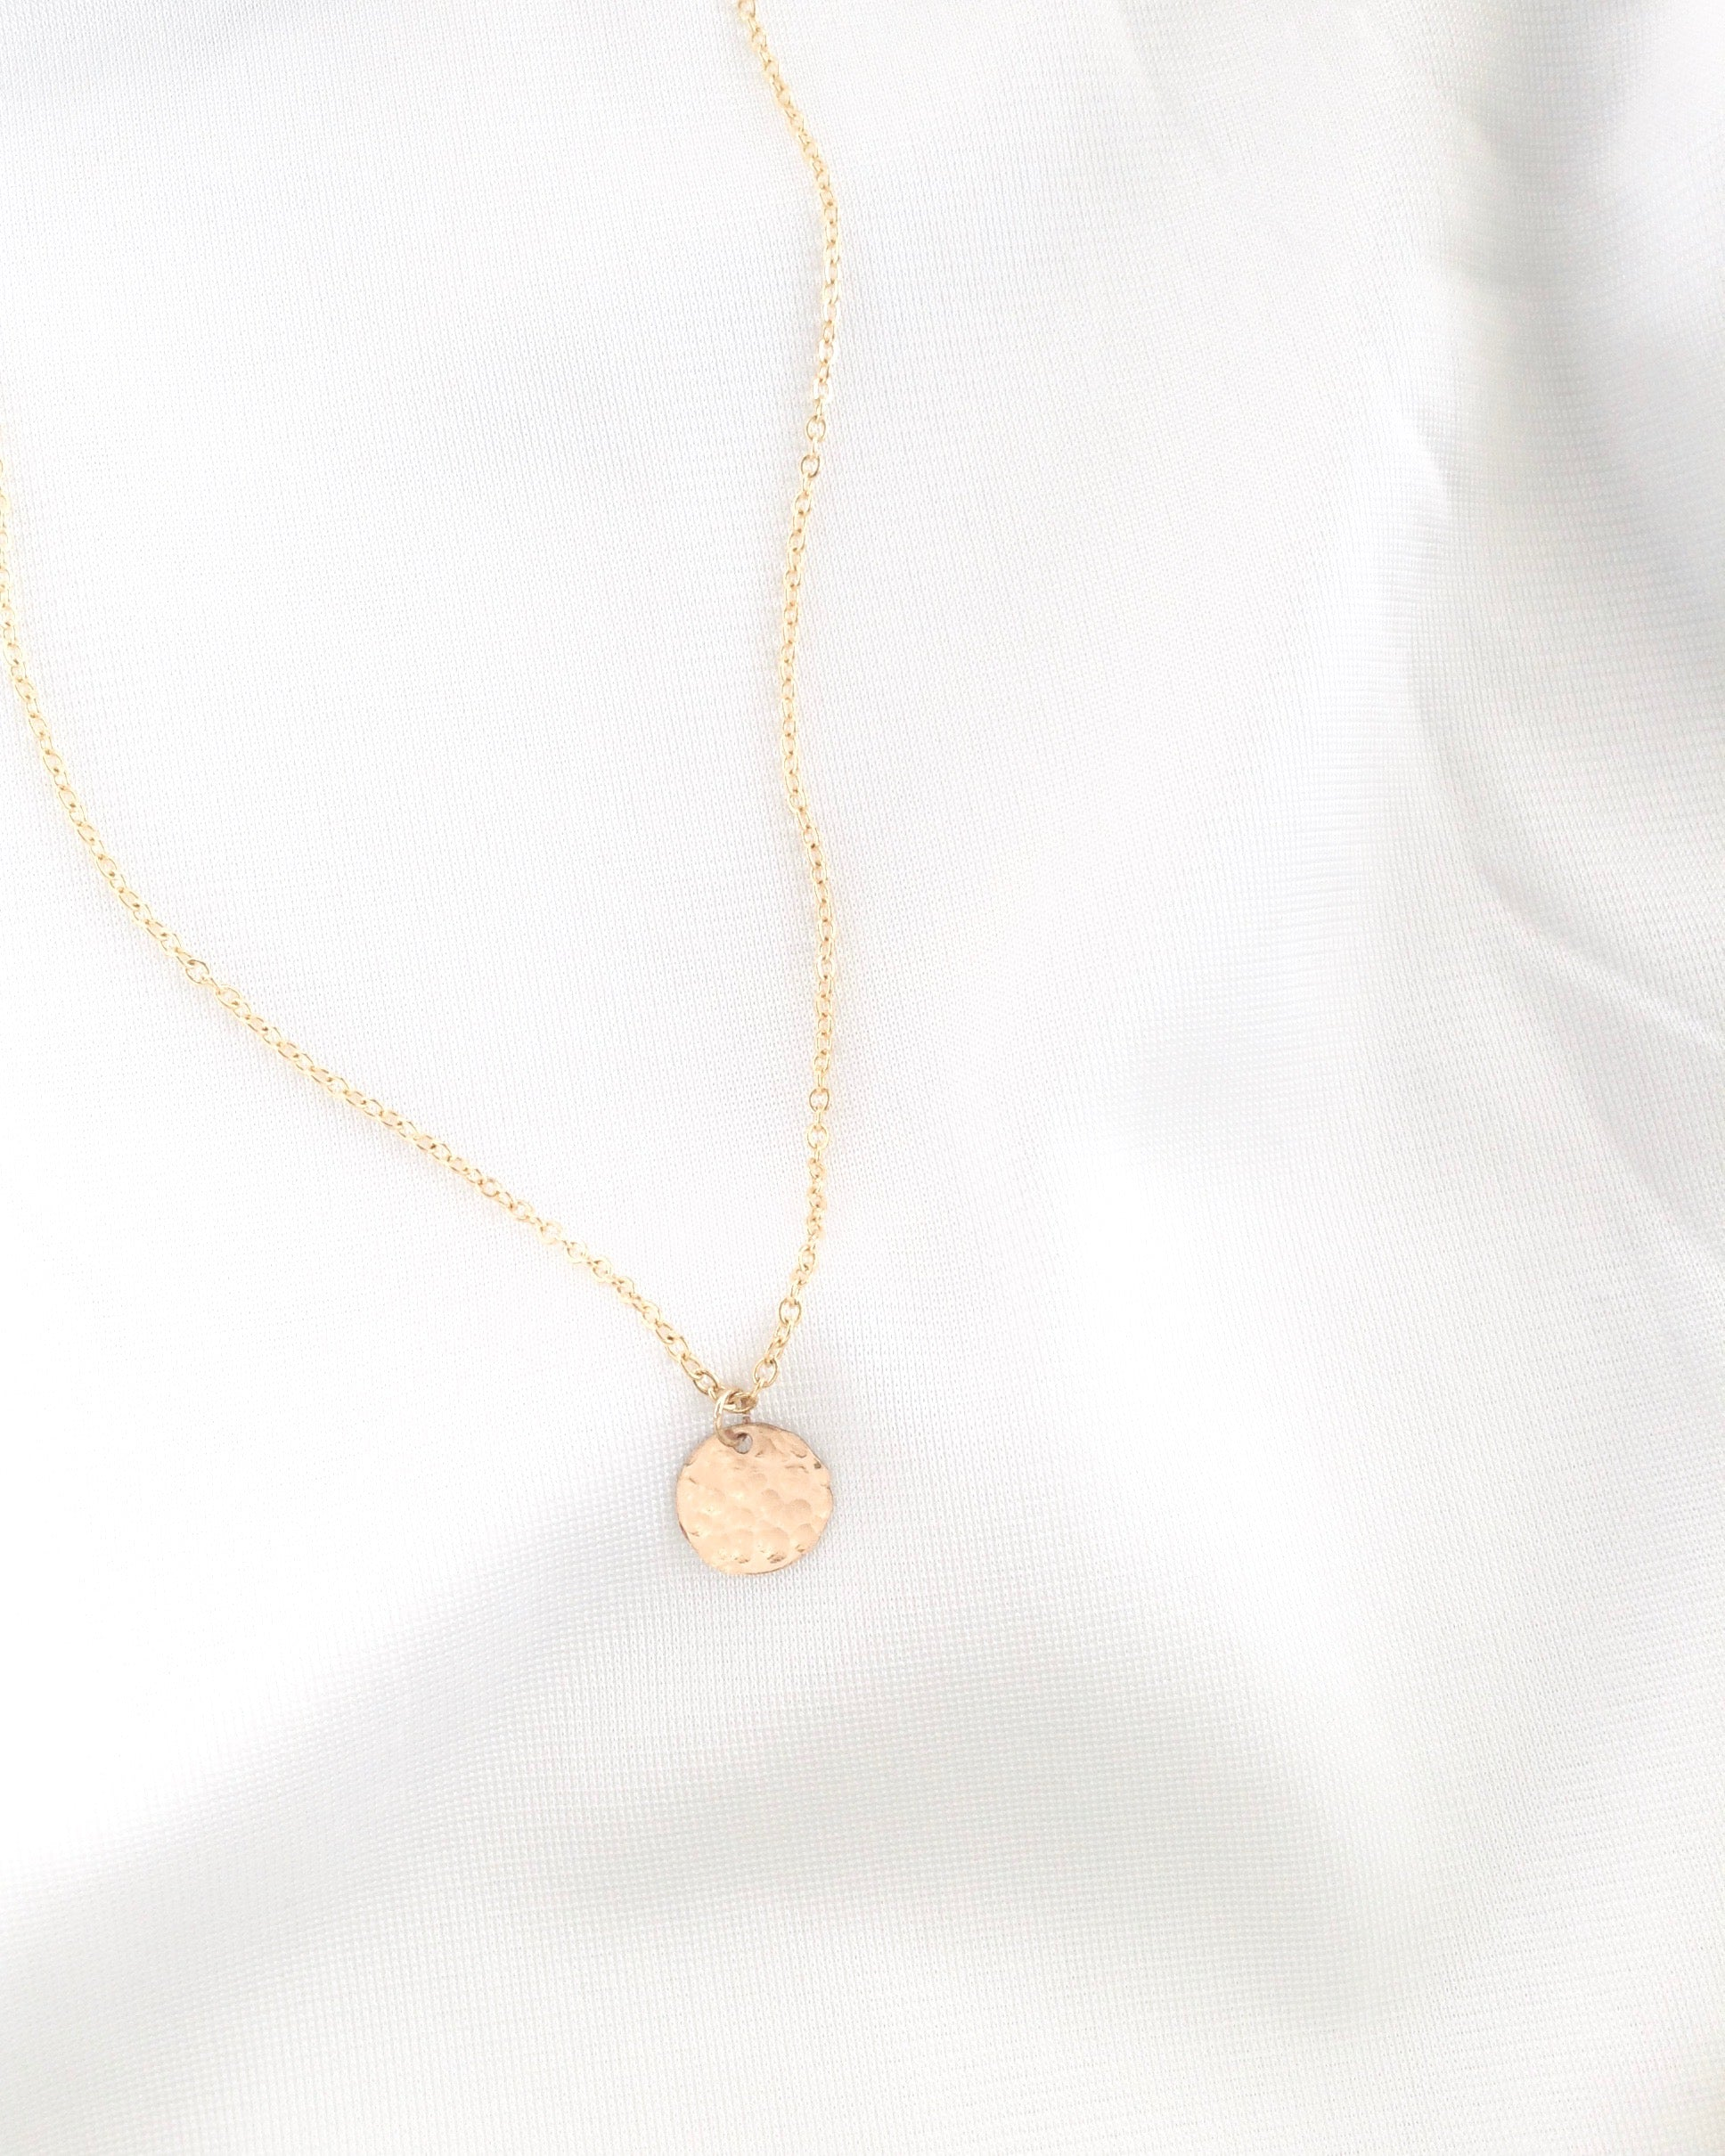 Small Disc Necklace | Simple Delicate Everyday Necklace | IB Jewelry